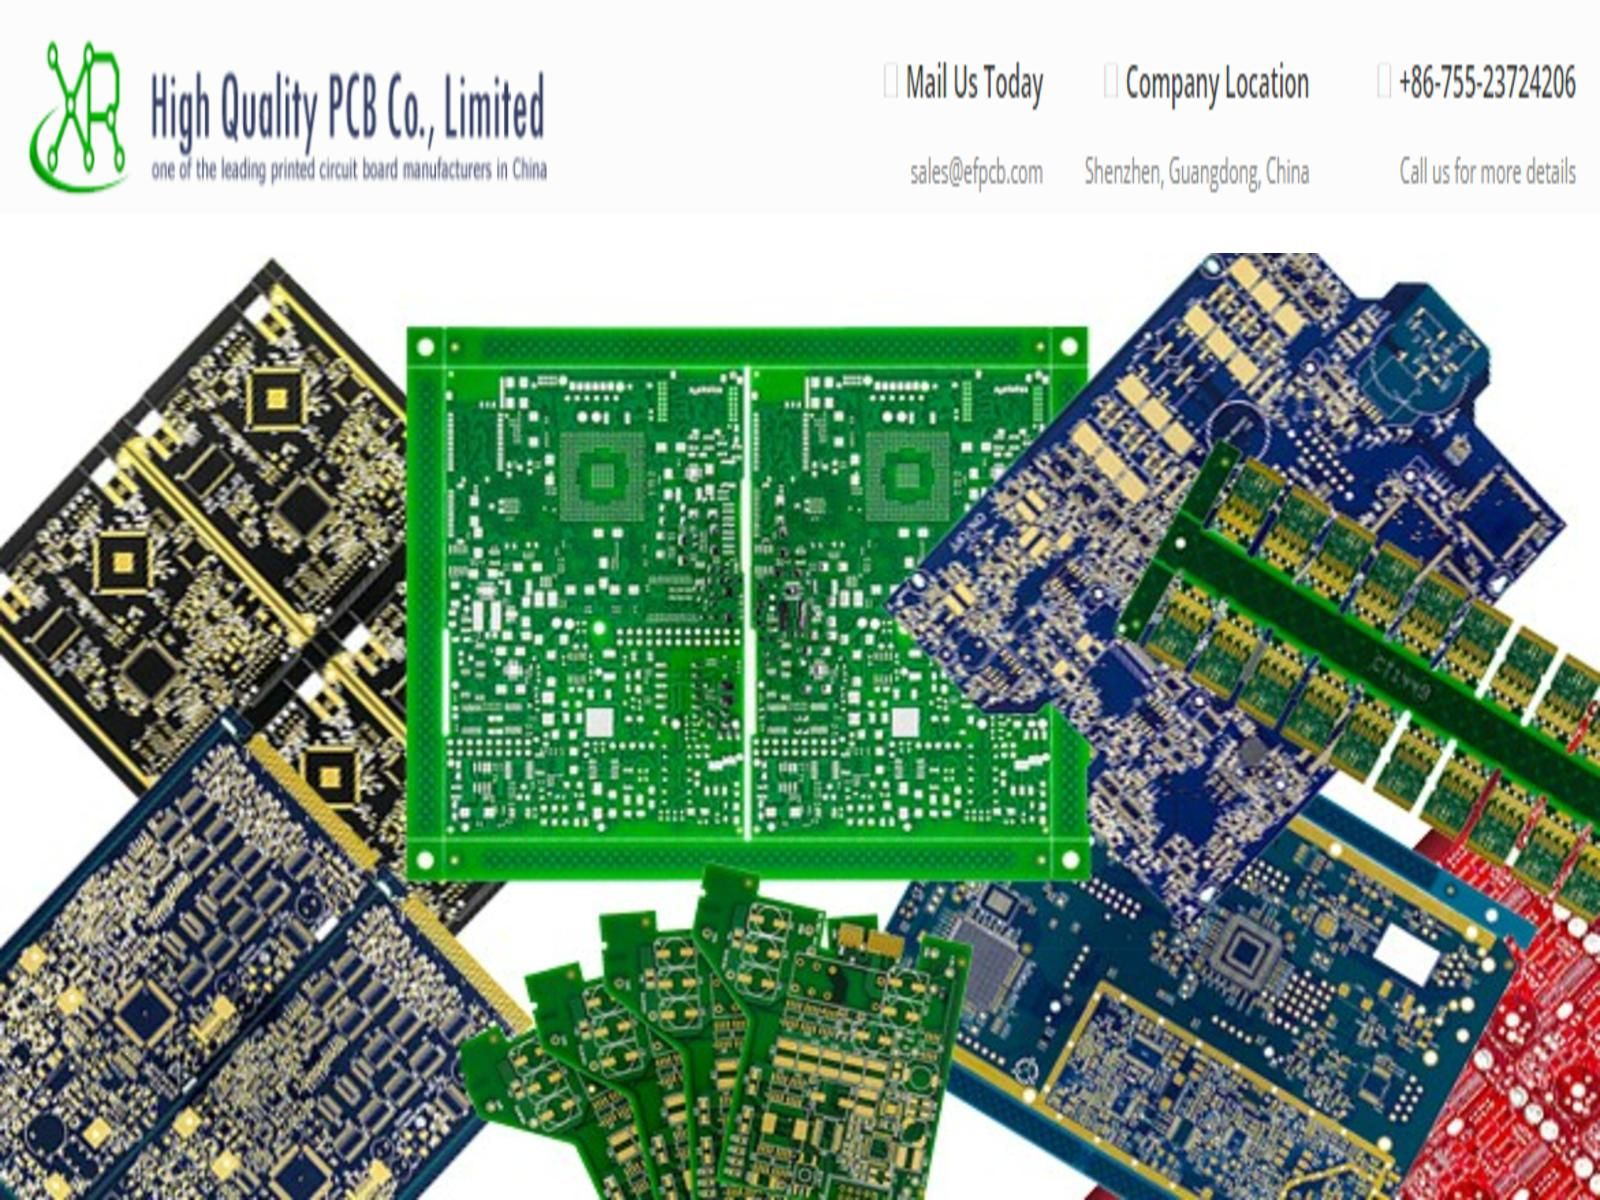 Flexible Pcb Supplier China In 2018 Efpcb Blog Pinterest Layers Multilayer Printed Circuit Board